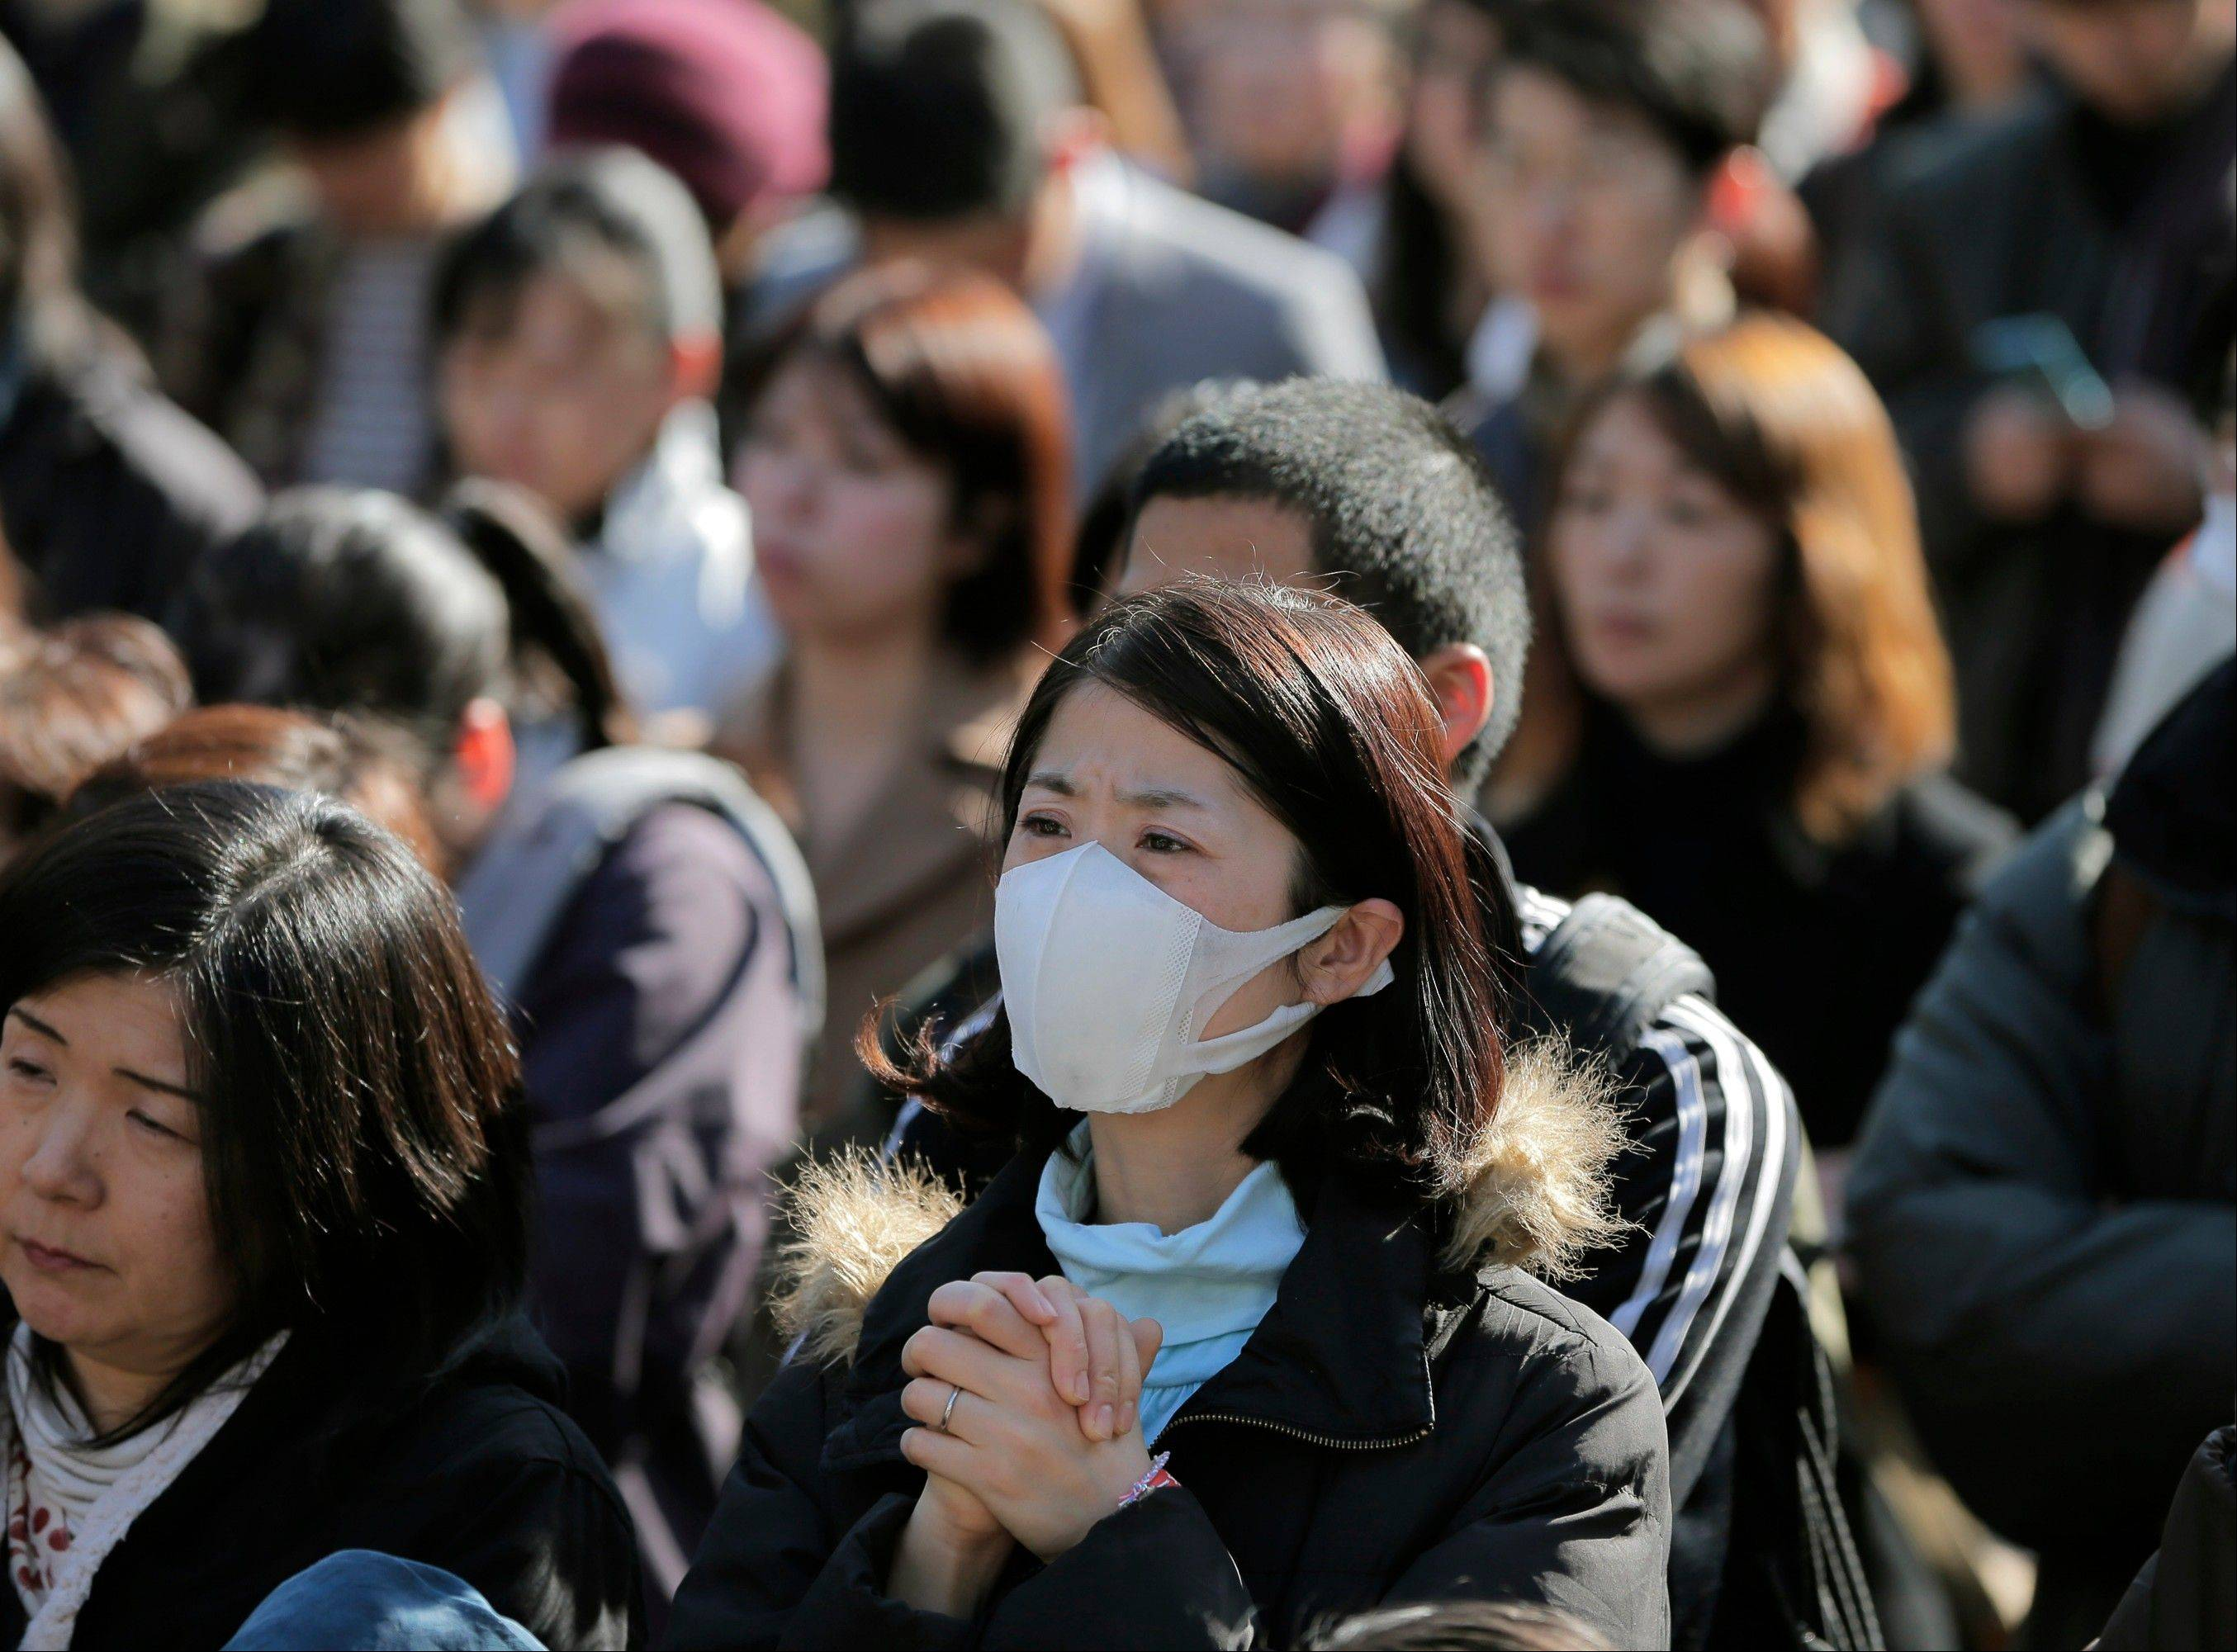 A woman prays during a rally against nuclear power plants as victims of the March 11, 2011 earthquake and tsunami are remembered, at a park in Tokyo, Monday, March 11, 2013. Japan marked the second anniversary on Monday of the devastating earthquake and tsunami that left nearly 19,000 people dead or missing.